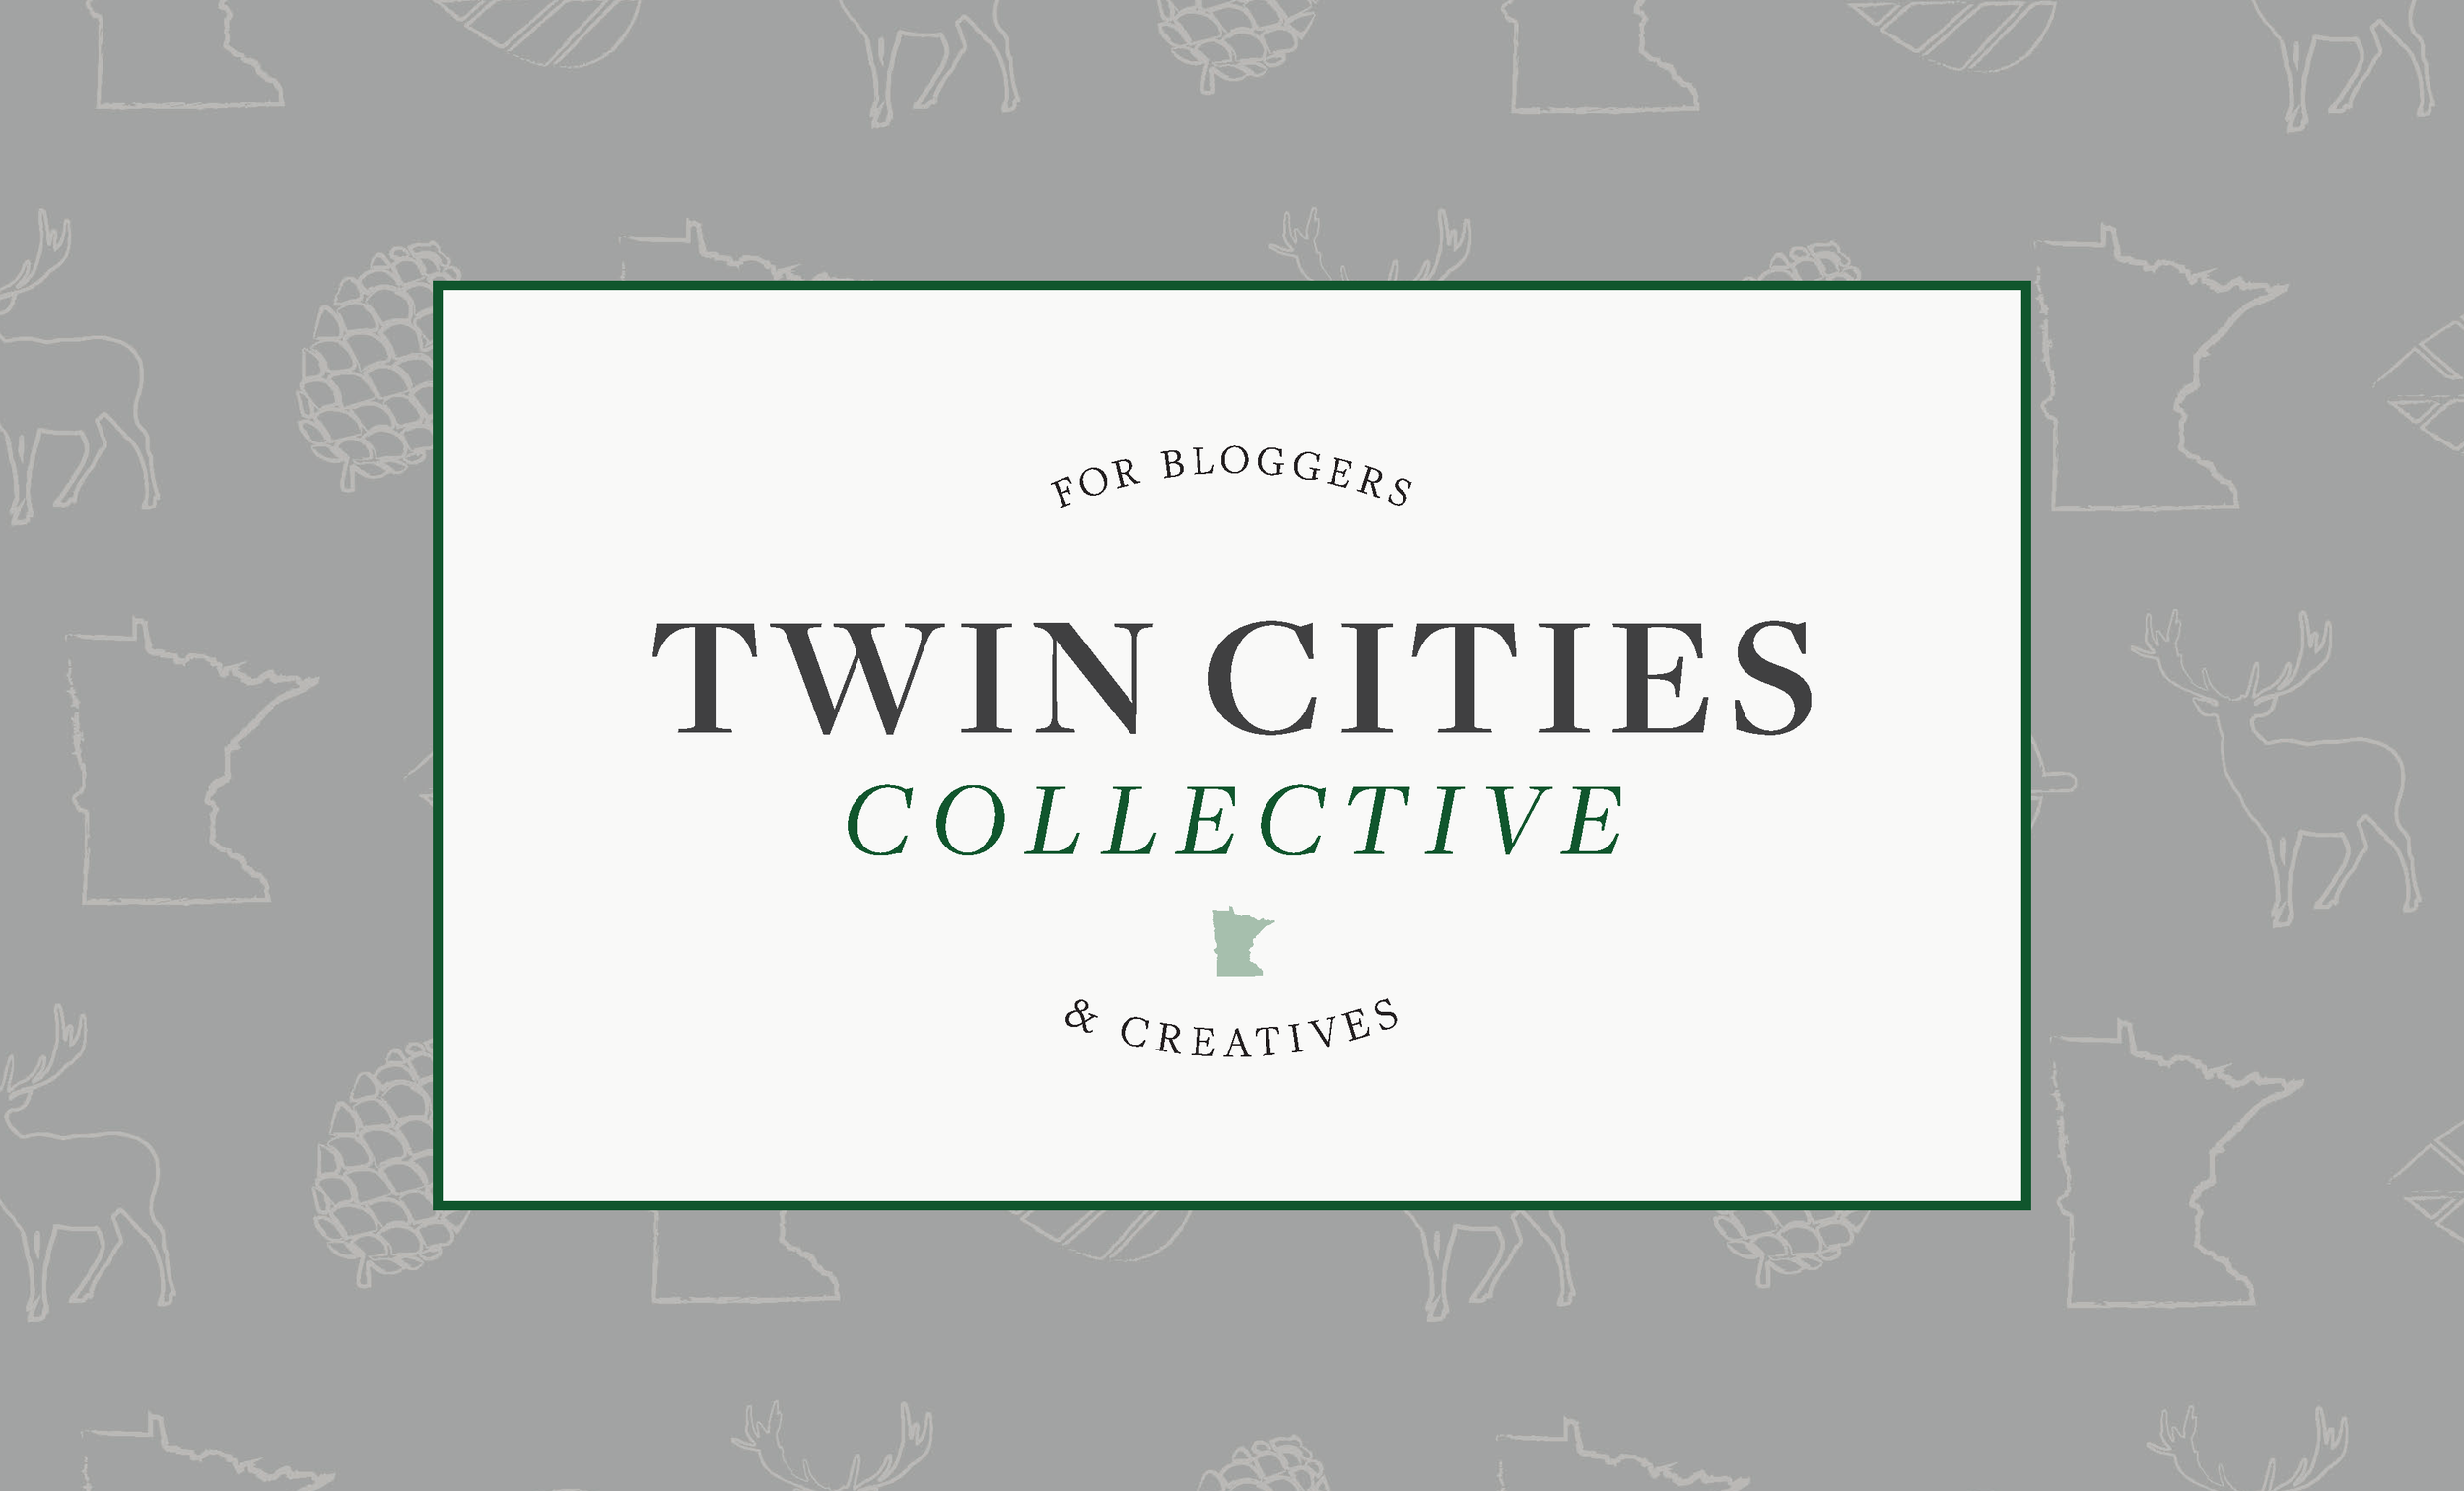 Twin Cities Collective for Bloggers and Creatives